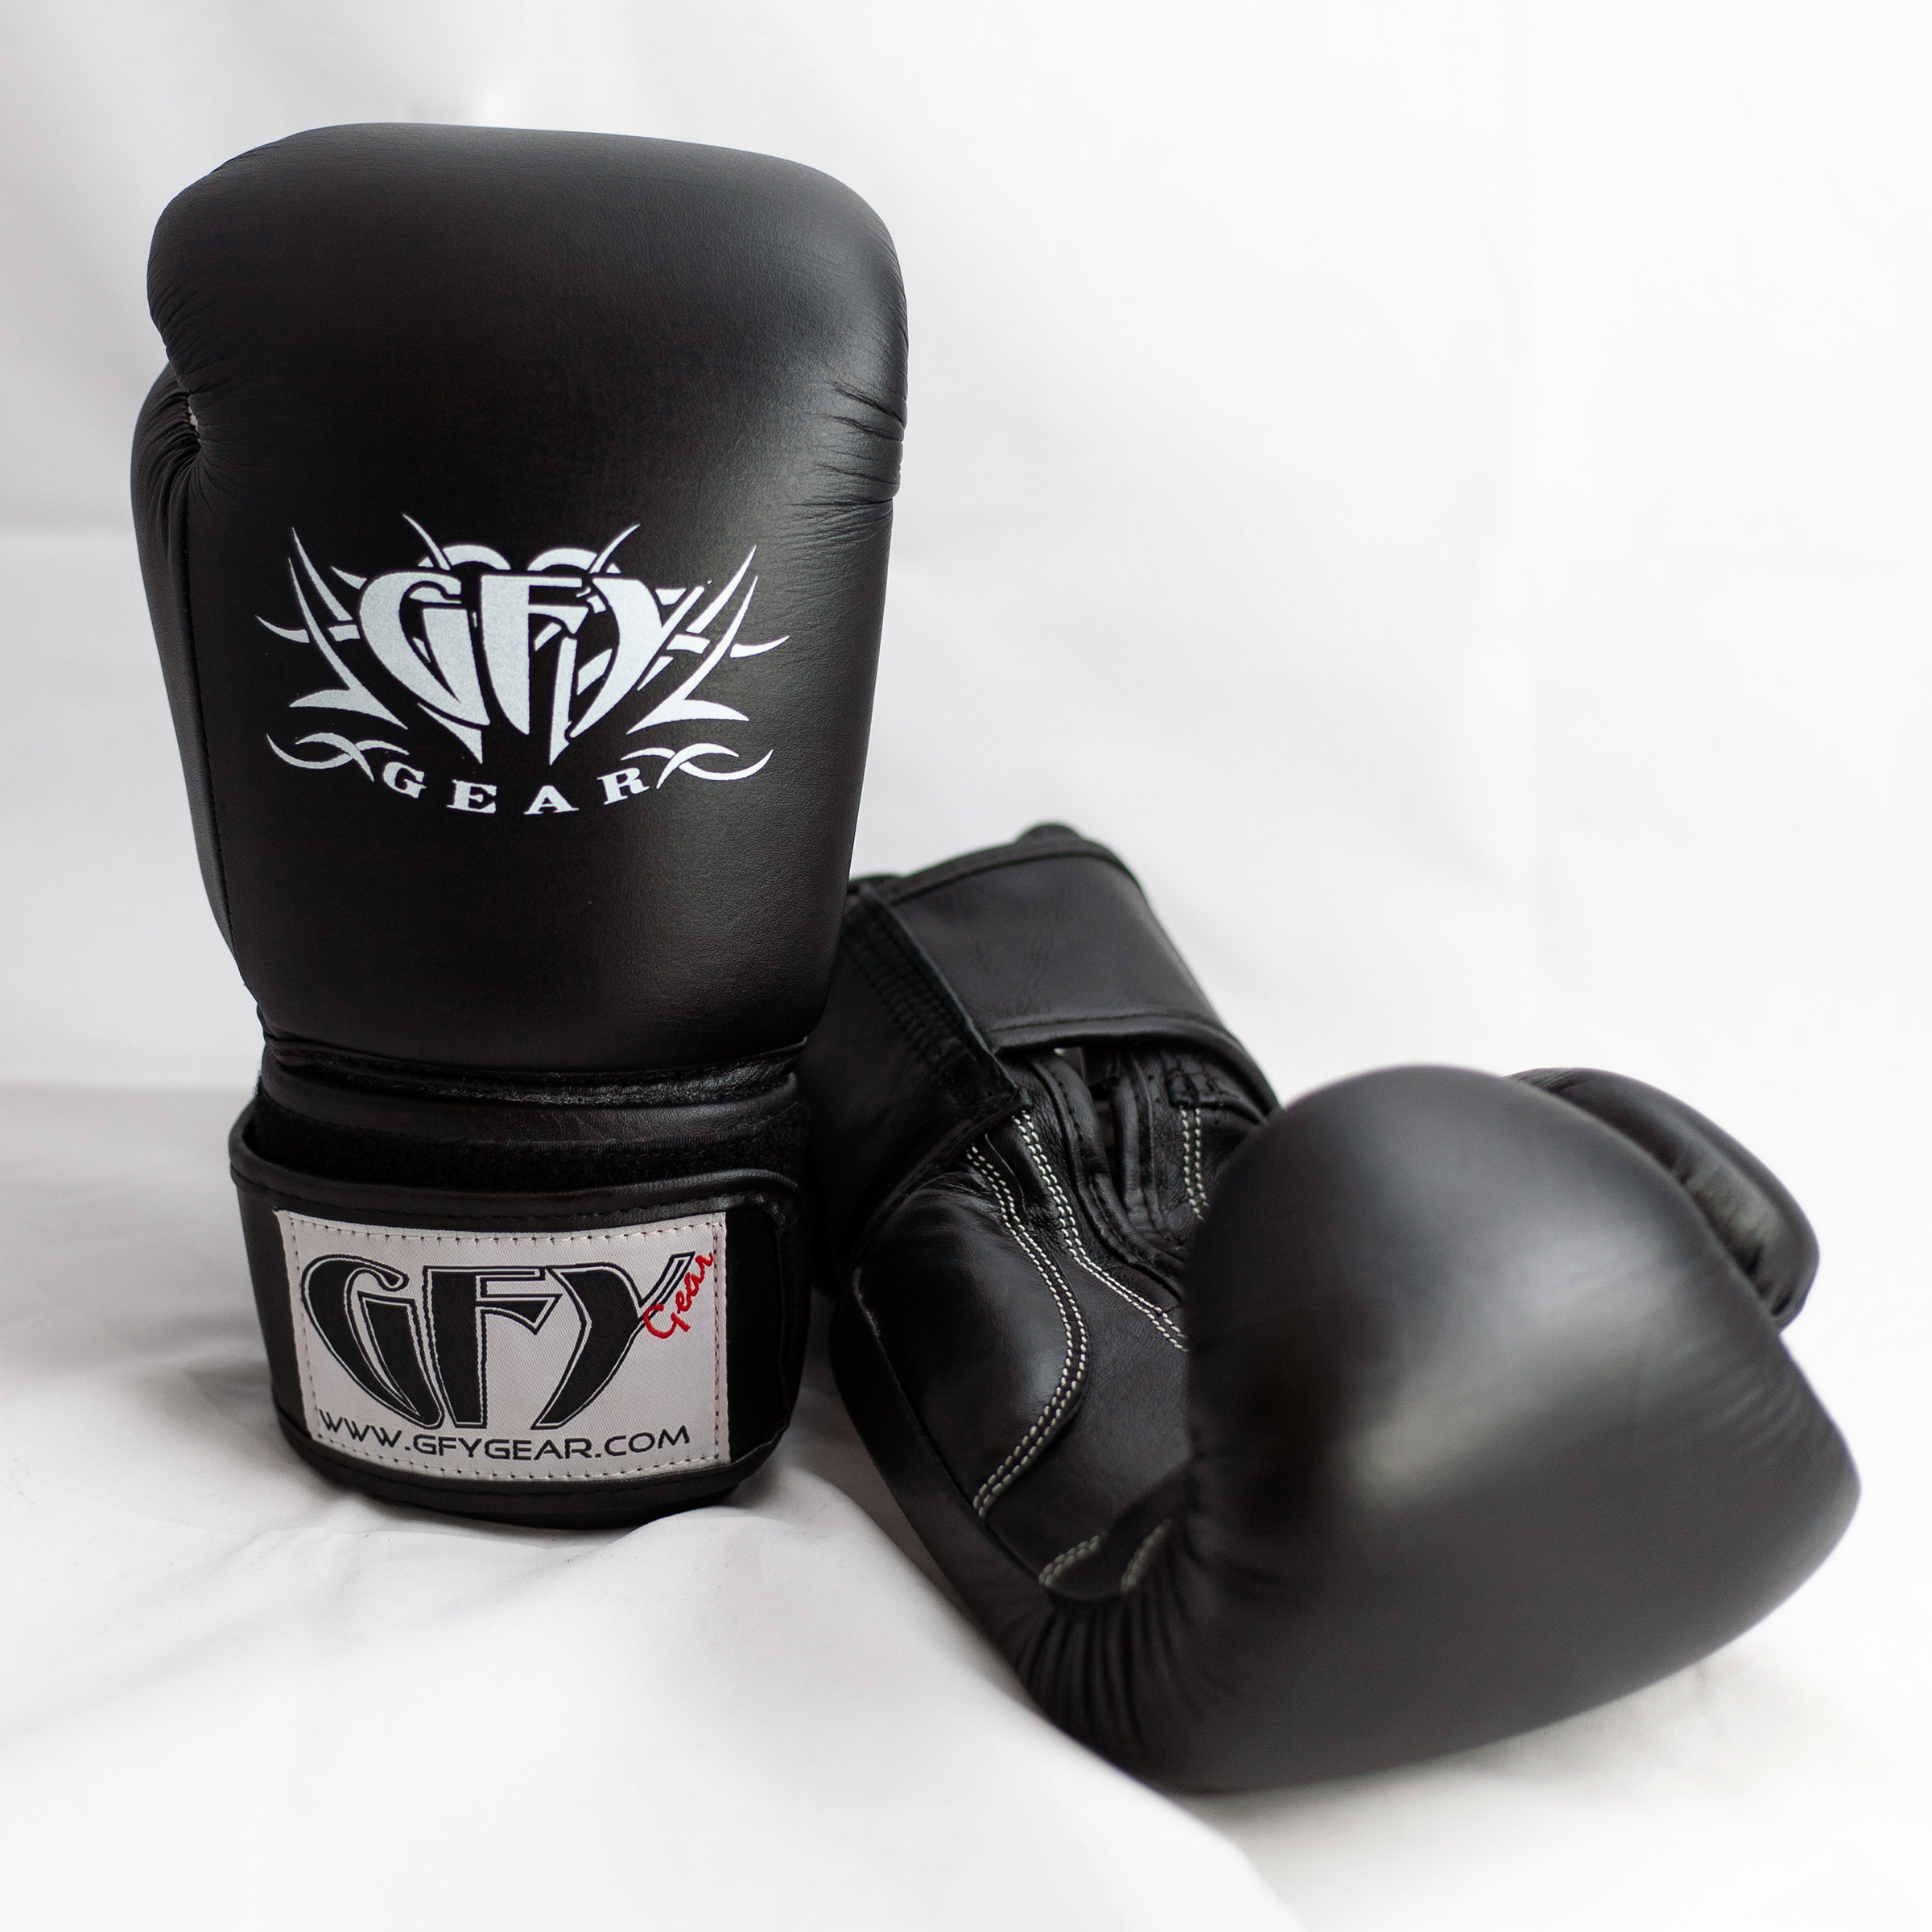 Gfy Leather Boxing Muay Thai Glove Asd Pro Shop